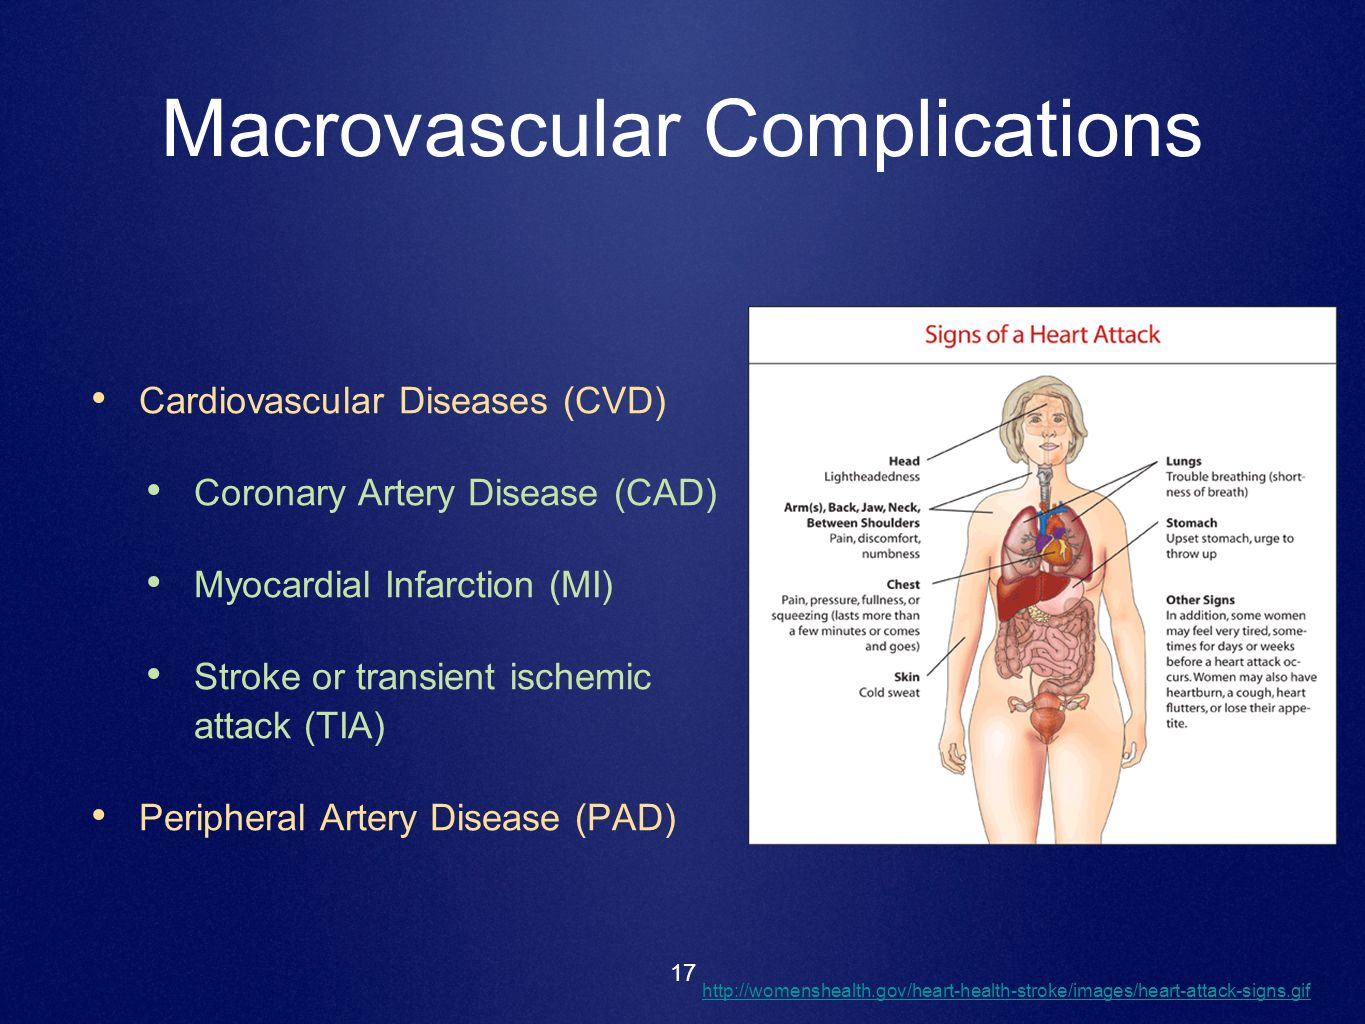 Macrovascular Complications